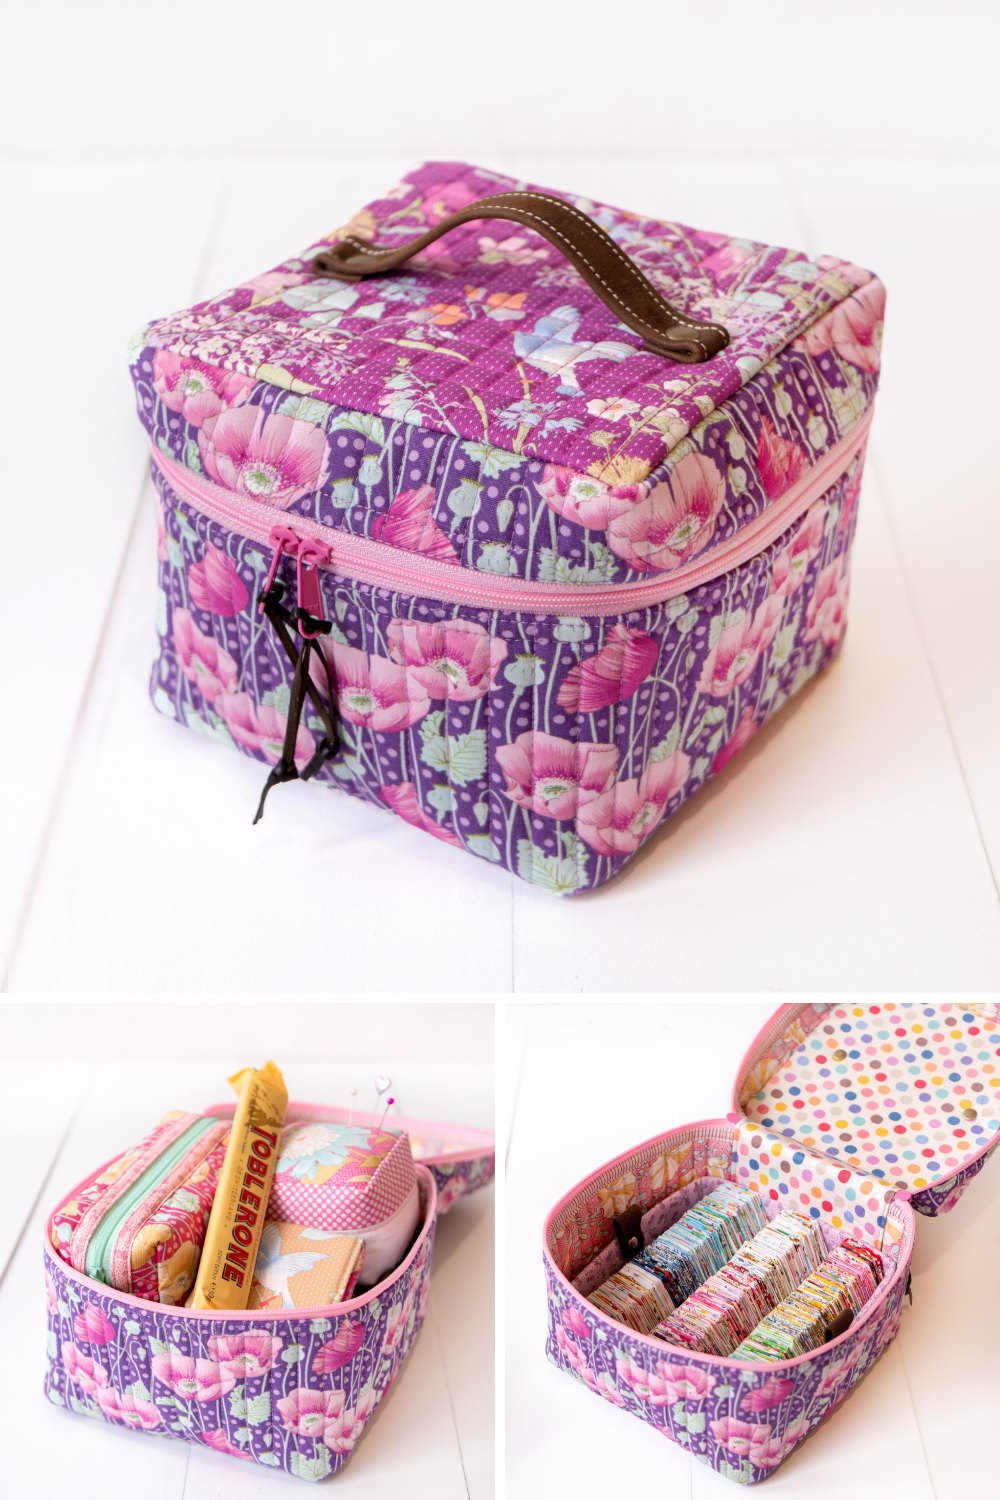 Ali's handmade sewing bag shown filled with different quilting notions | What's in Your Sewing Bag Arabesque Scissors? | Series by Shannon Fraser Designs #sewingkit #quiltingnotions